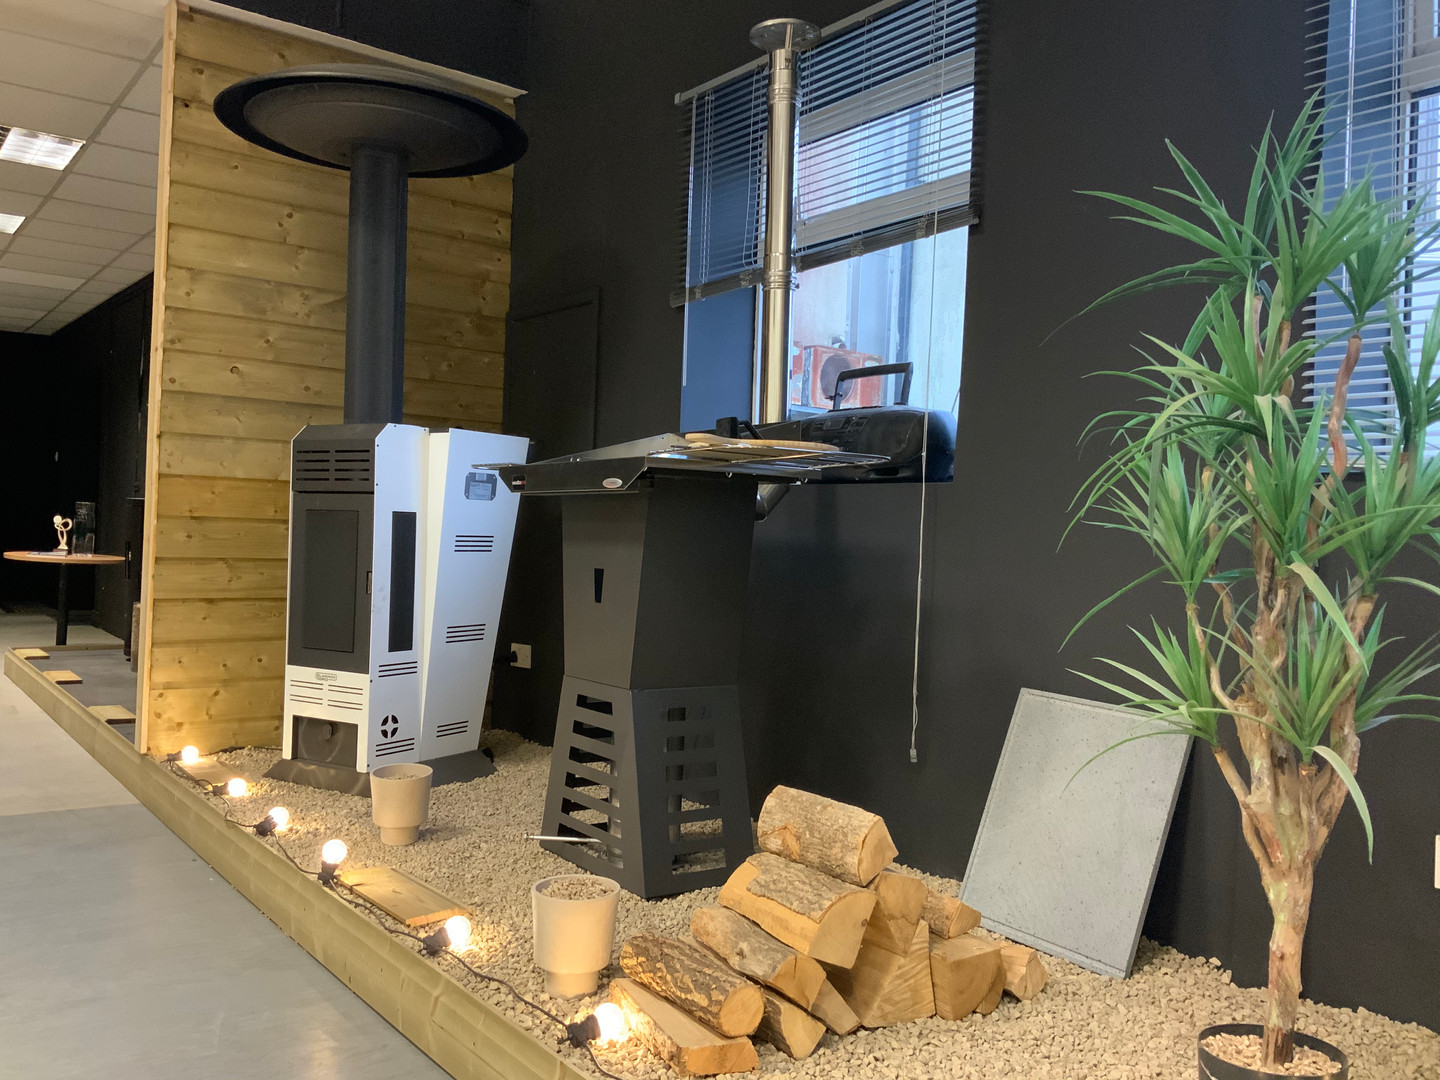 Wood pellet bbq and heater